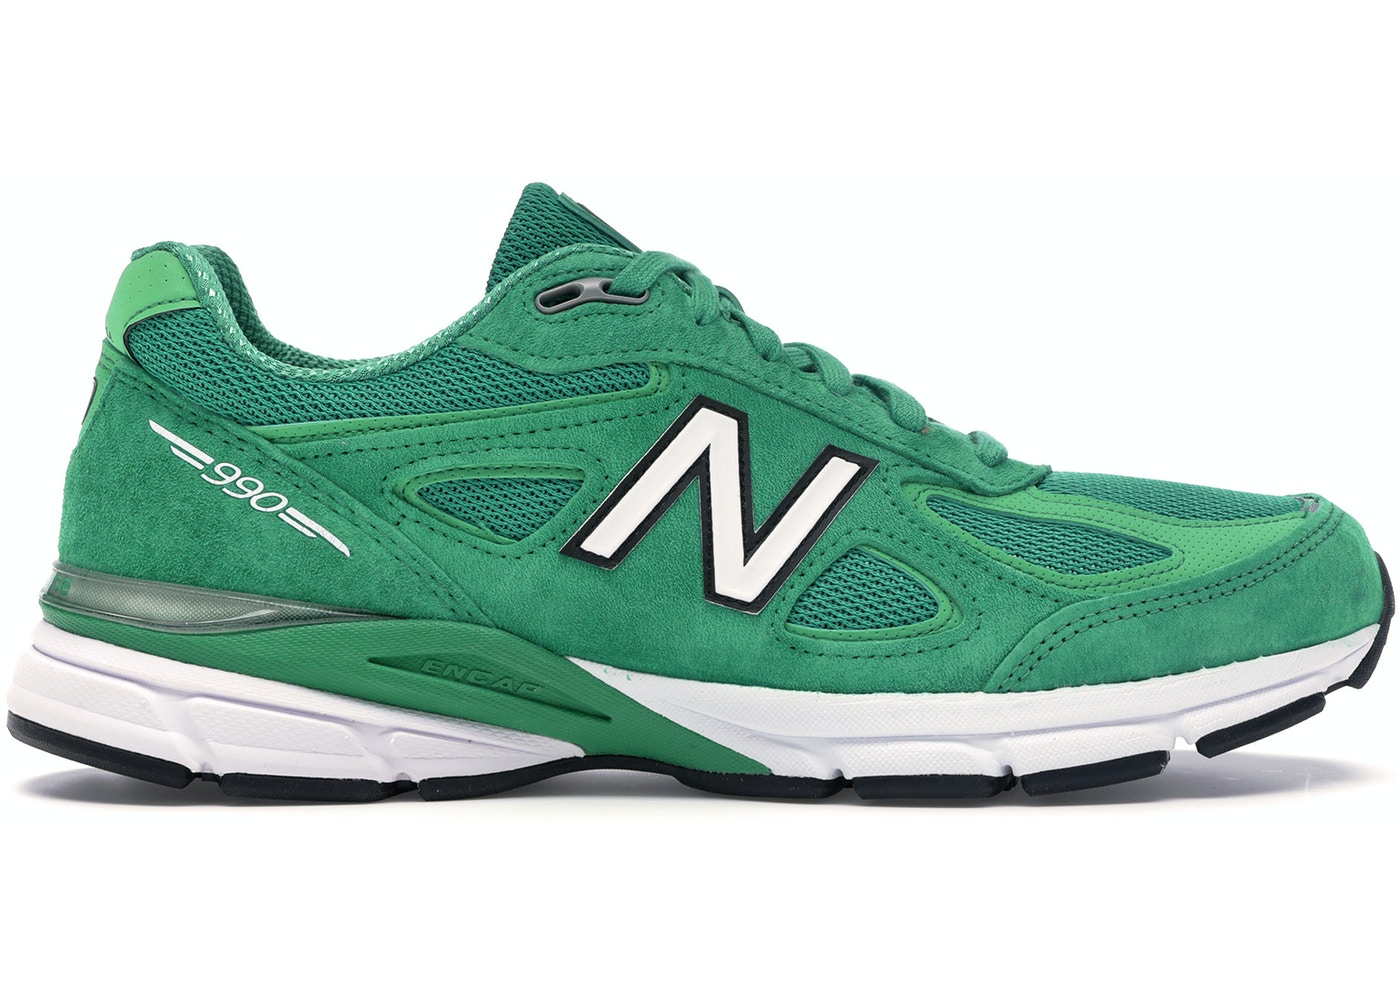 f01cc563046 New Balance 990v4 Green - M990NG4